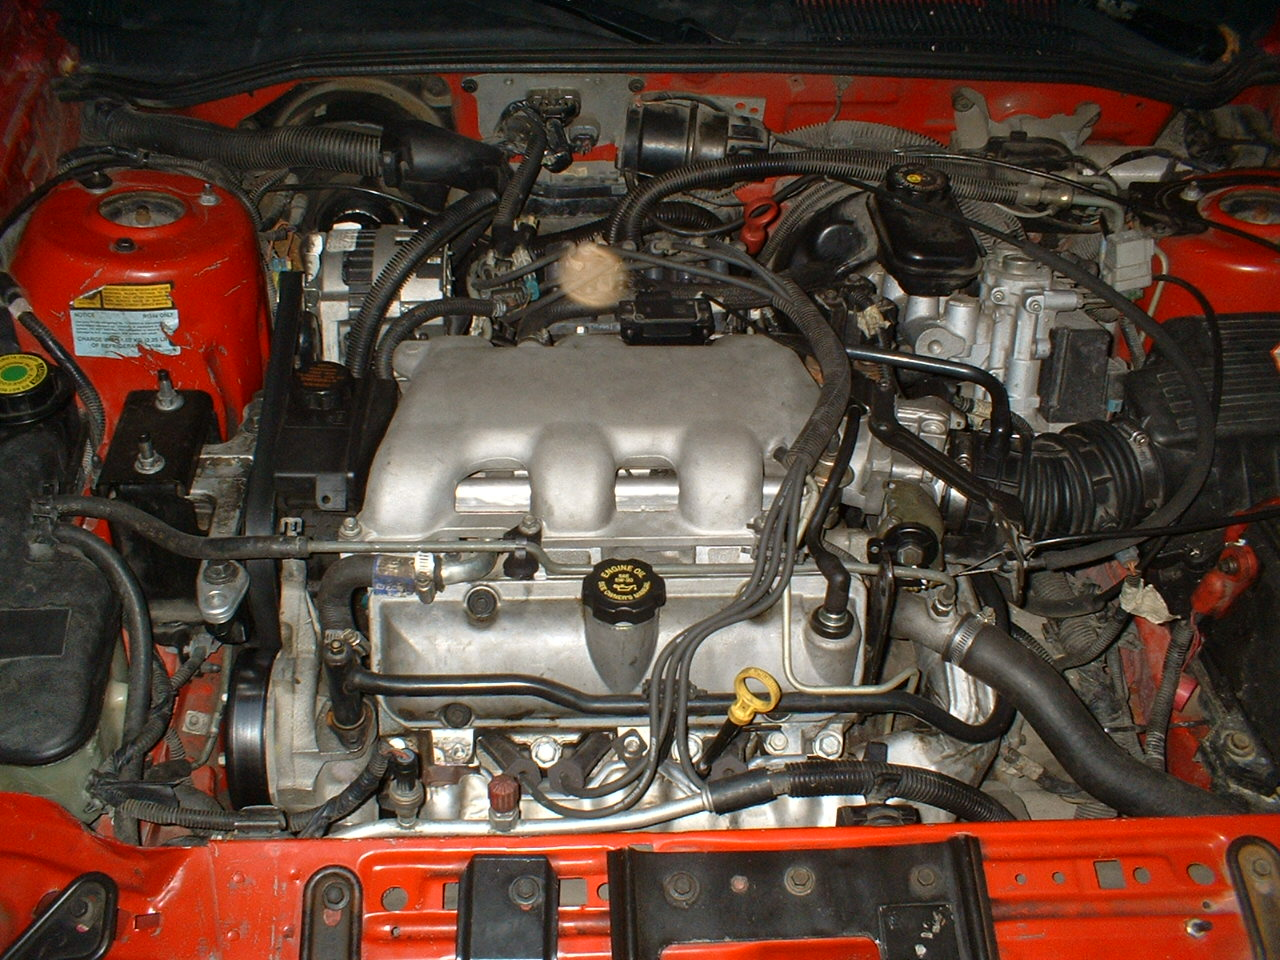 95 Chevy Corsica Engine Diagram Opinions About Wiring Silverado Get Free Image 2000 Blazer